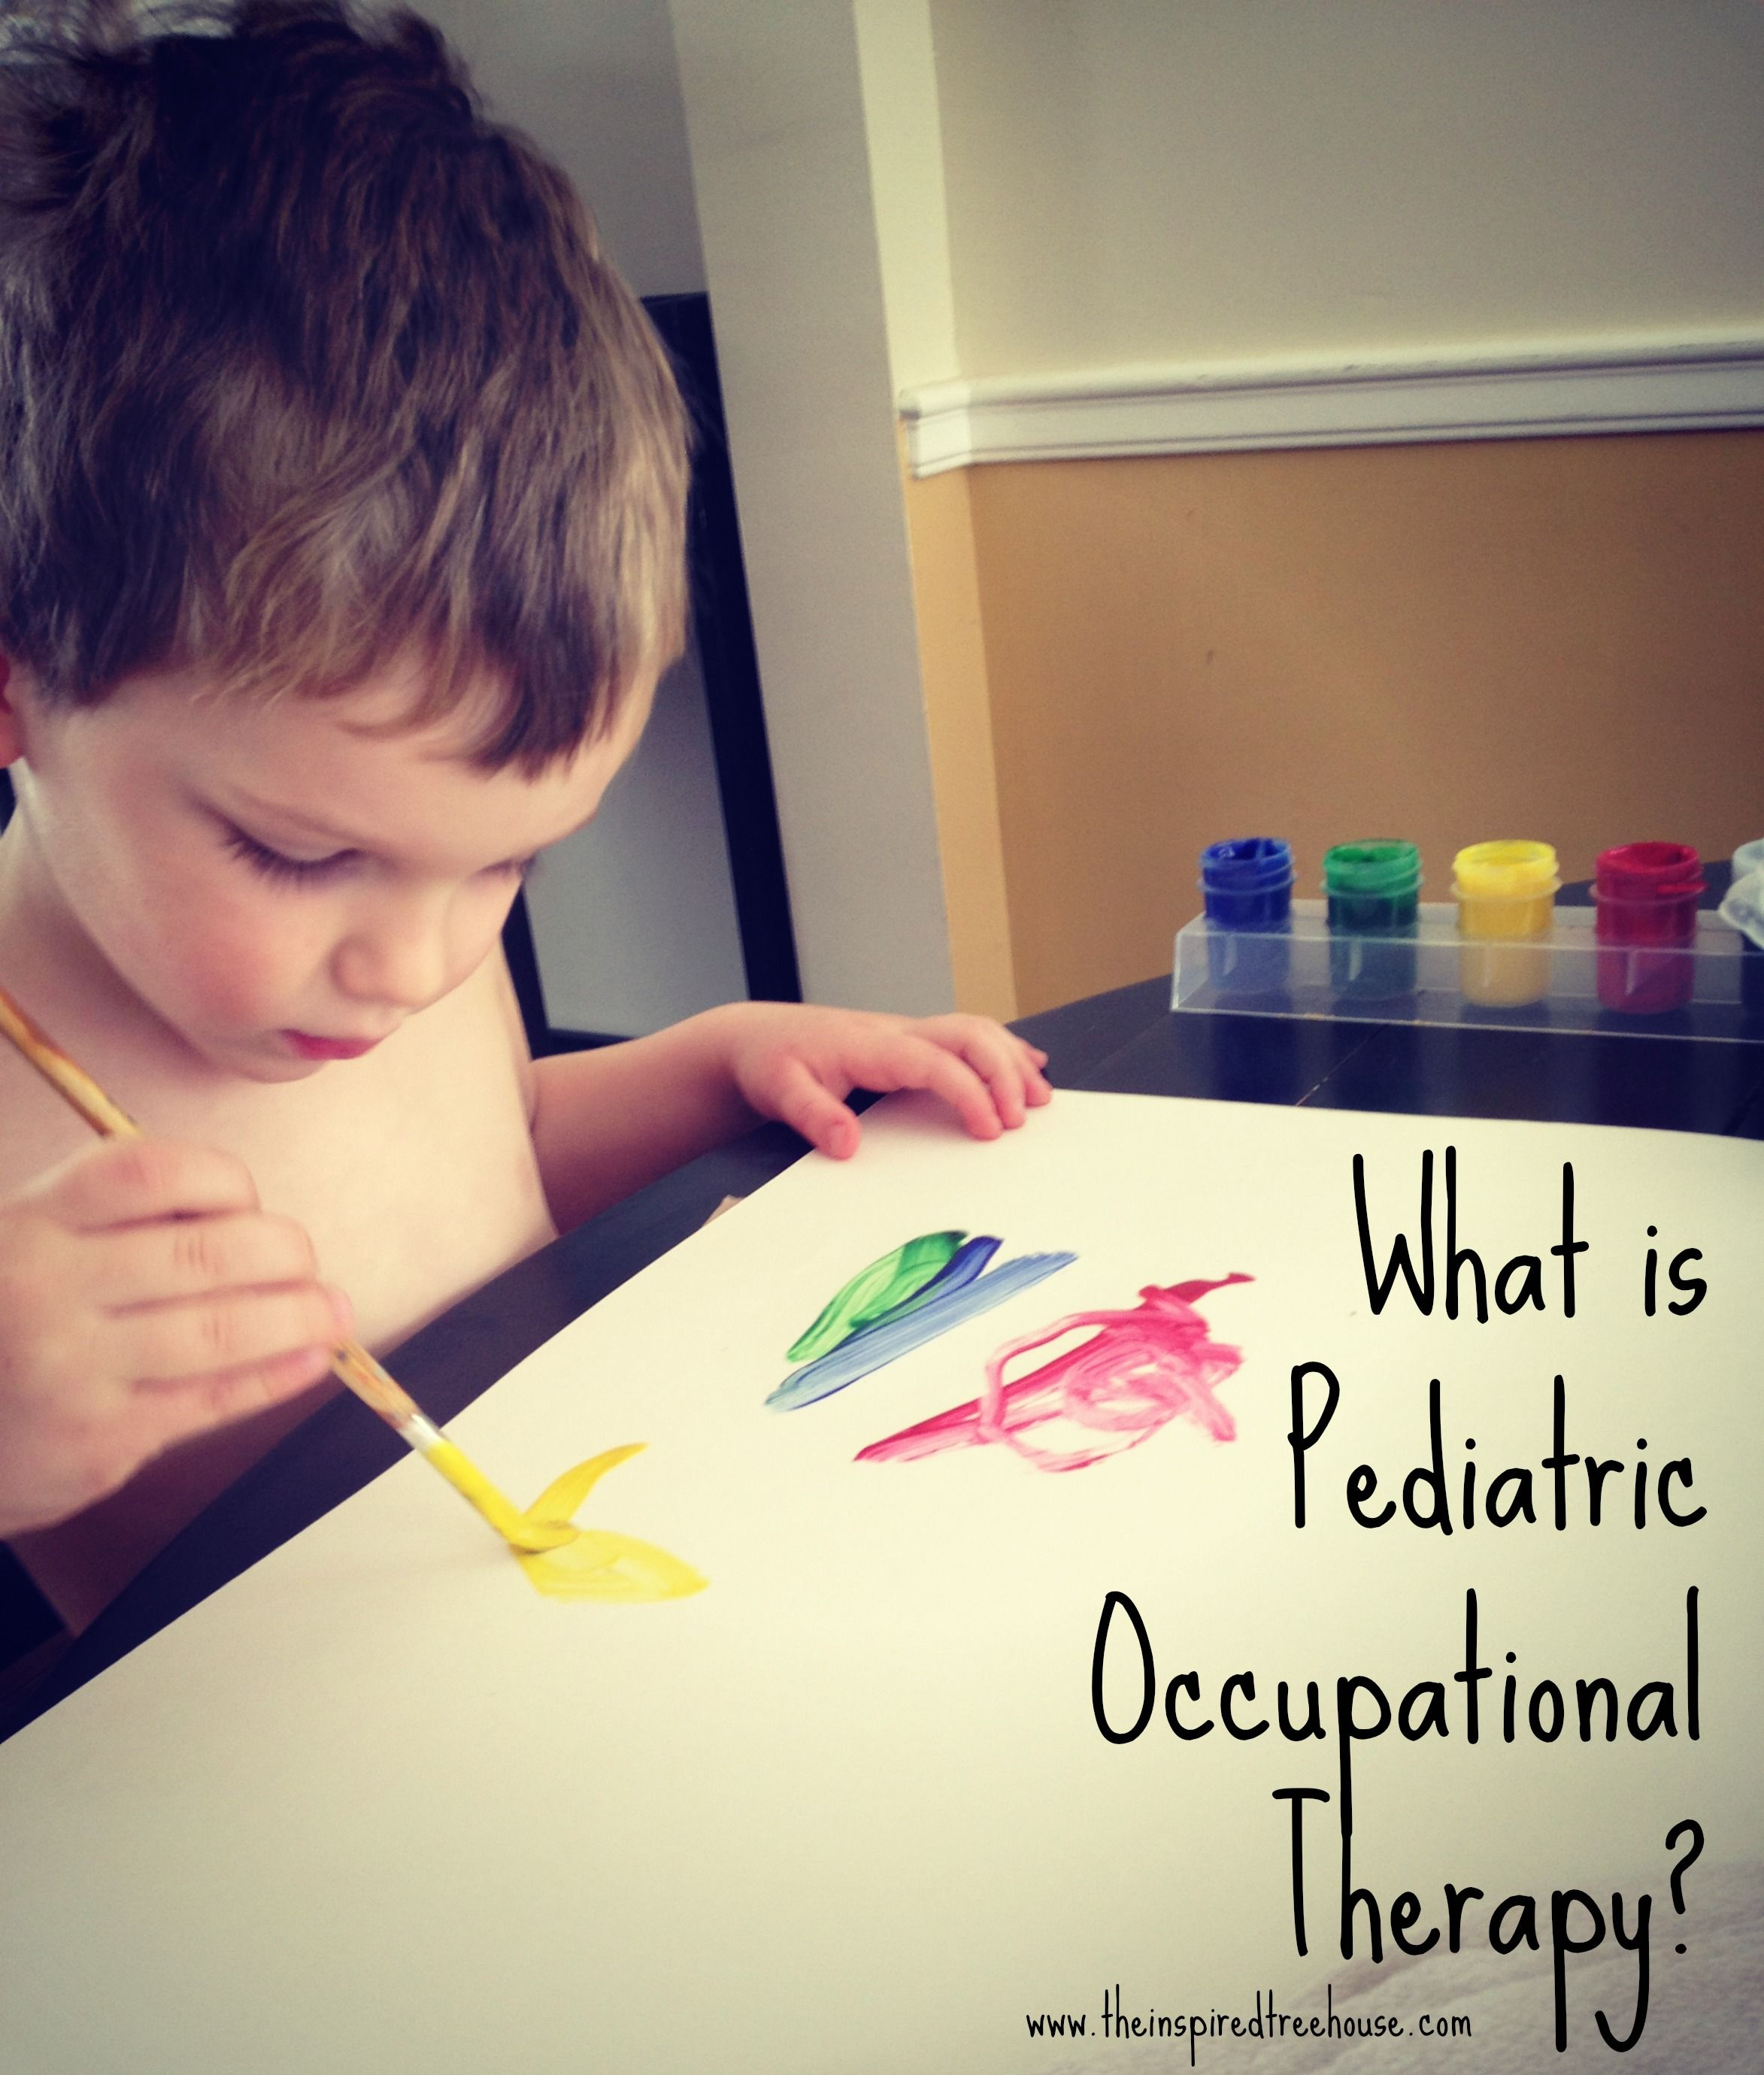 What Is Pediatric Occupational Therapy